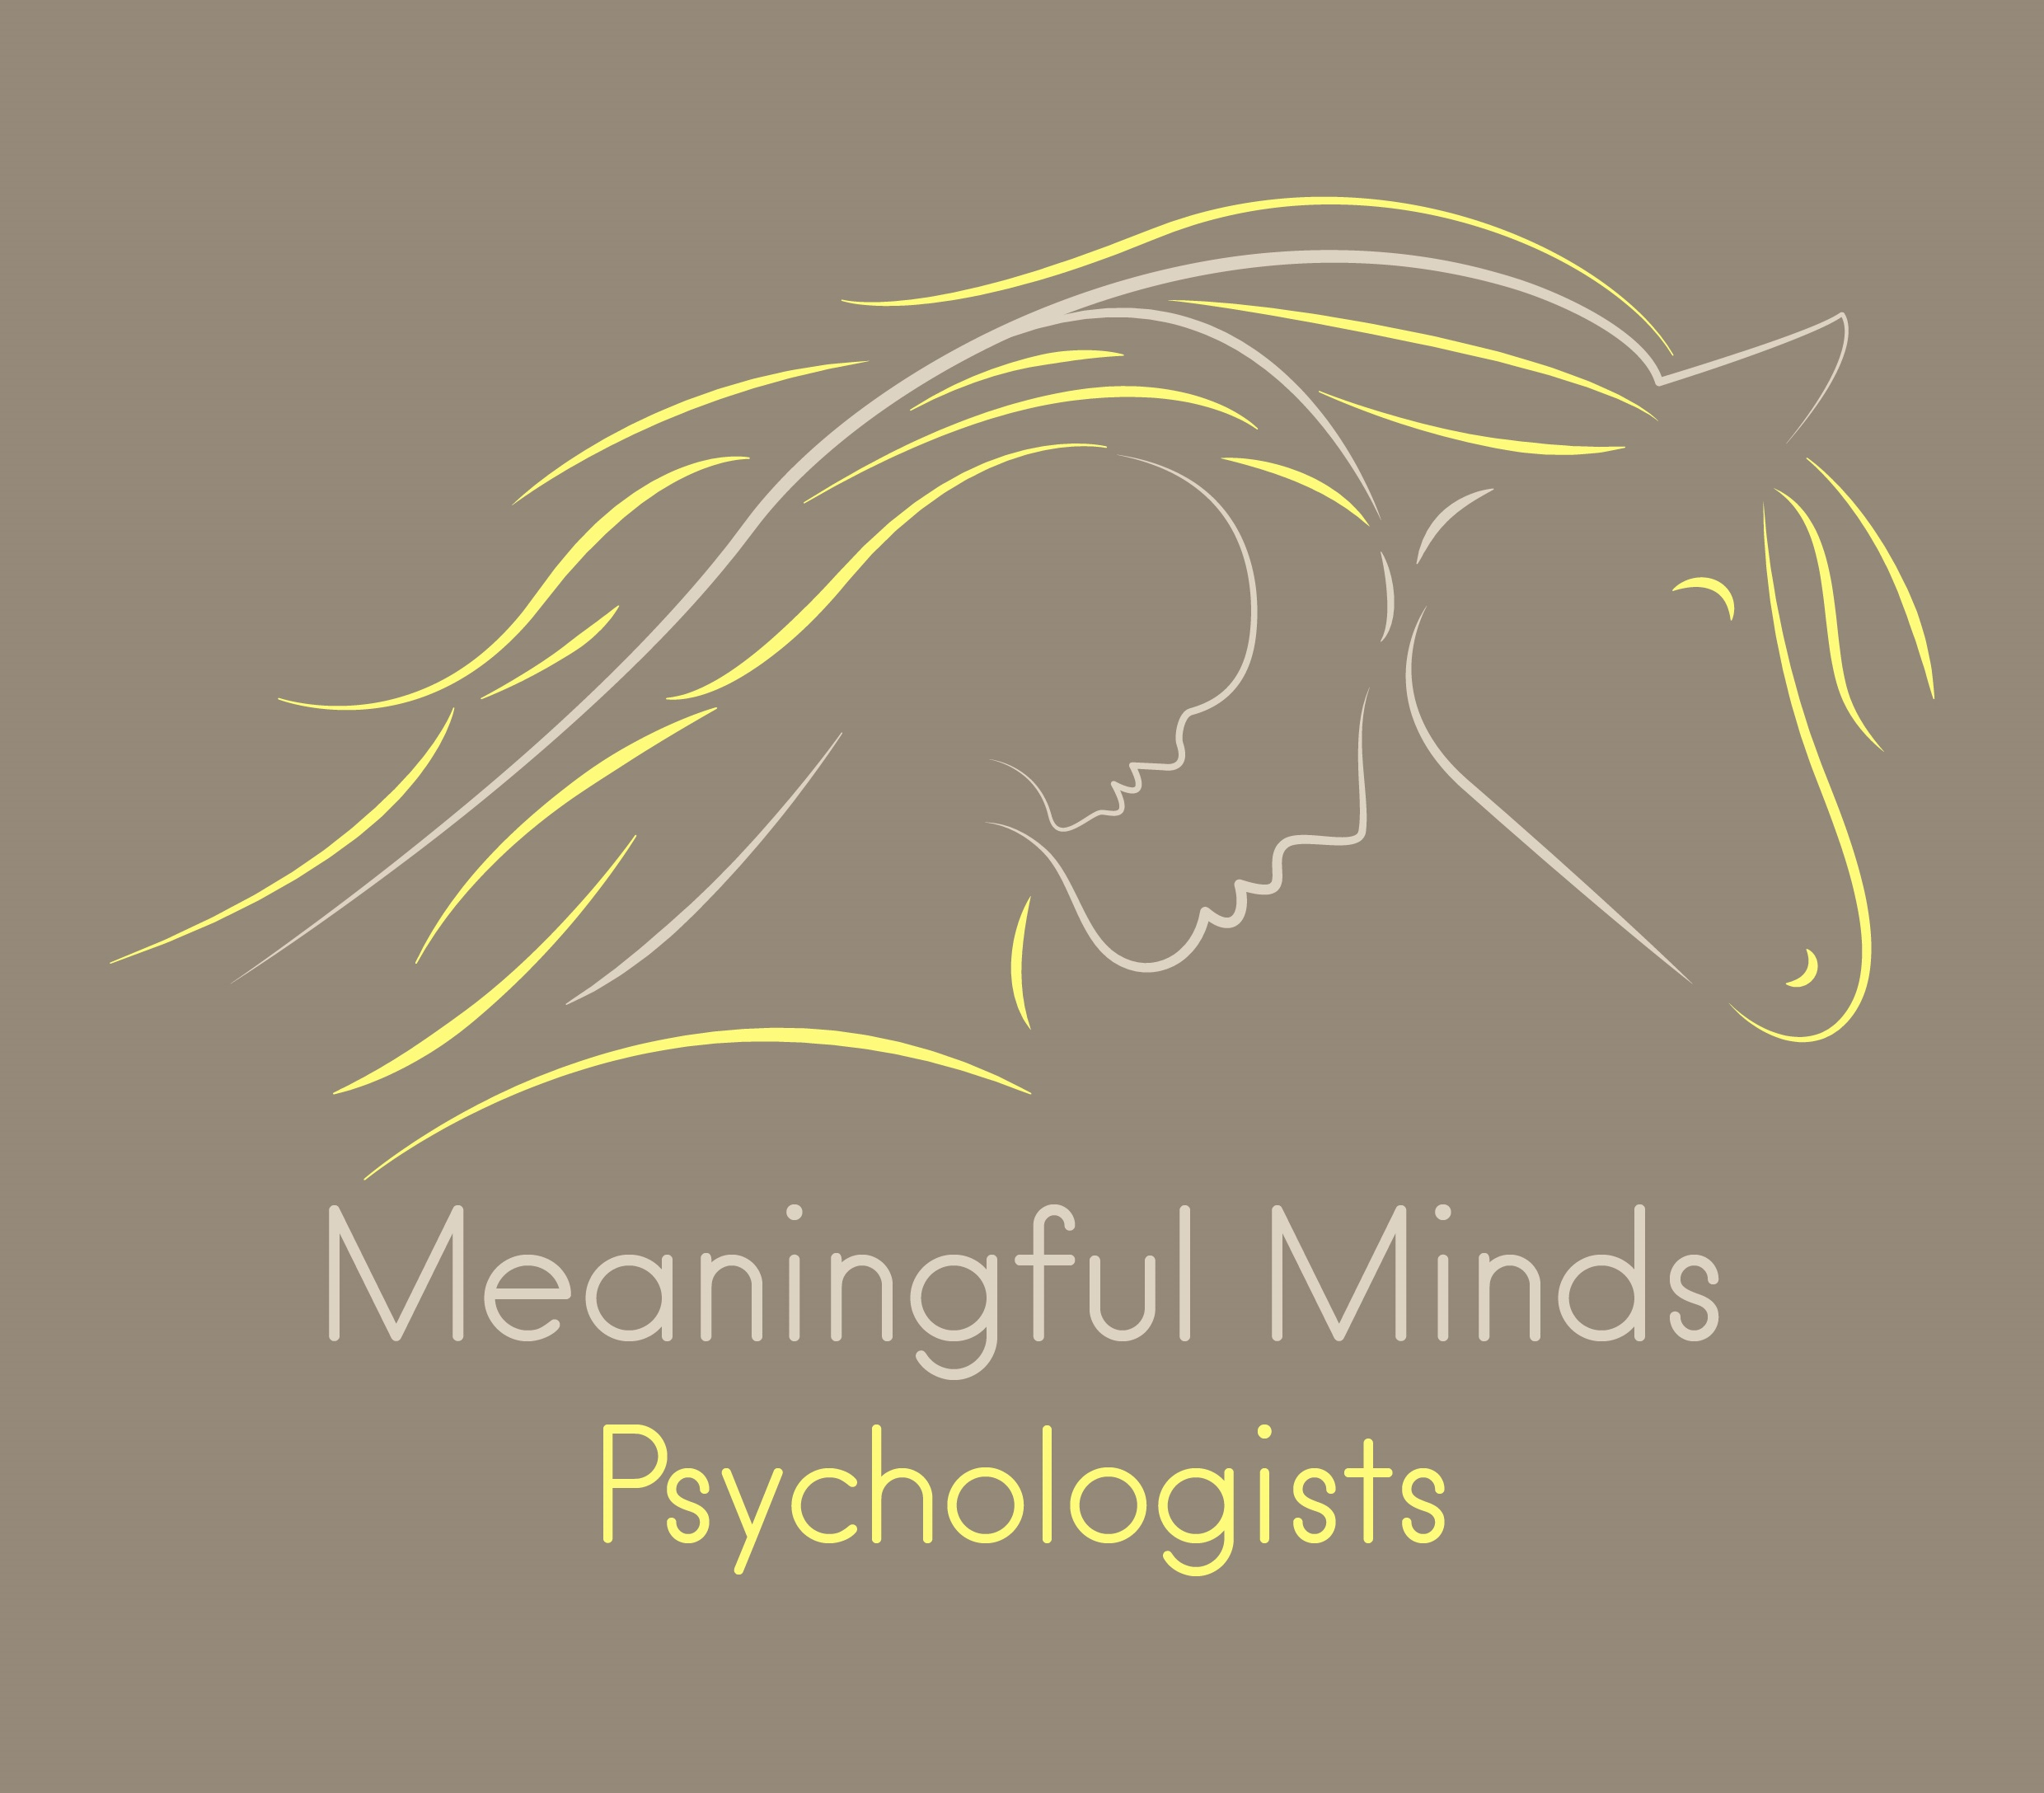 Psychologist Bedfordview|Johannesburg|Meaningful Minds Psychologists|